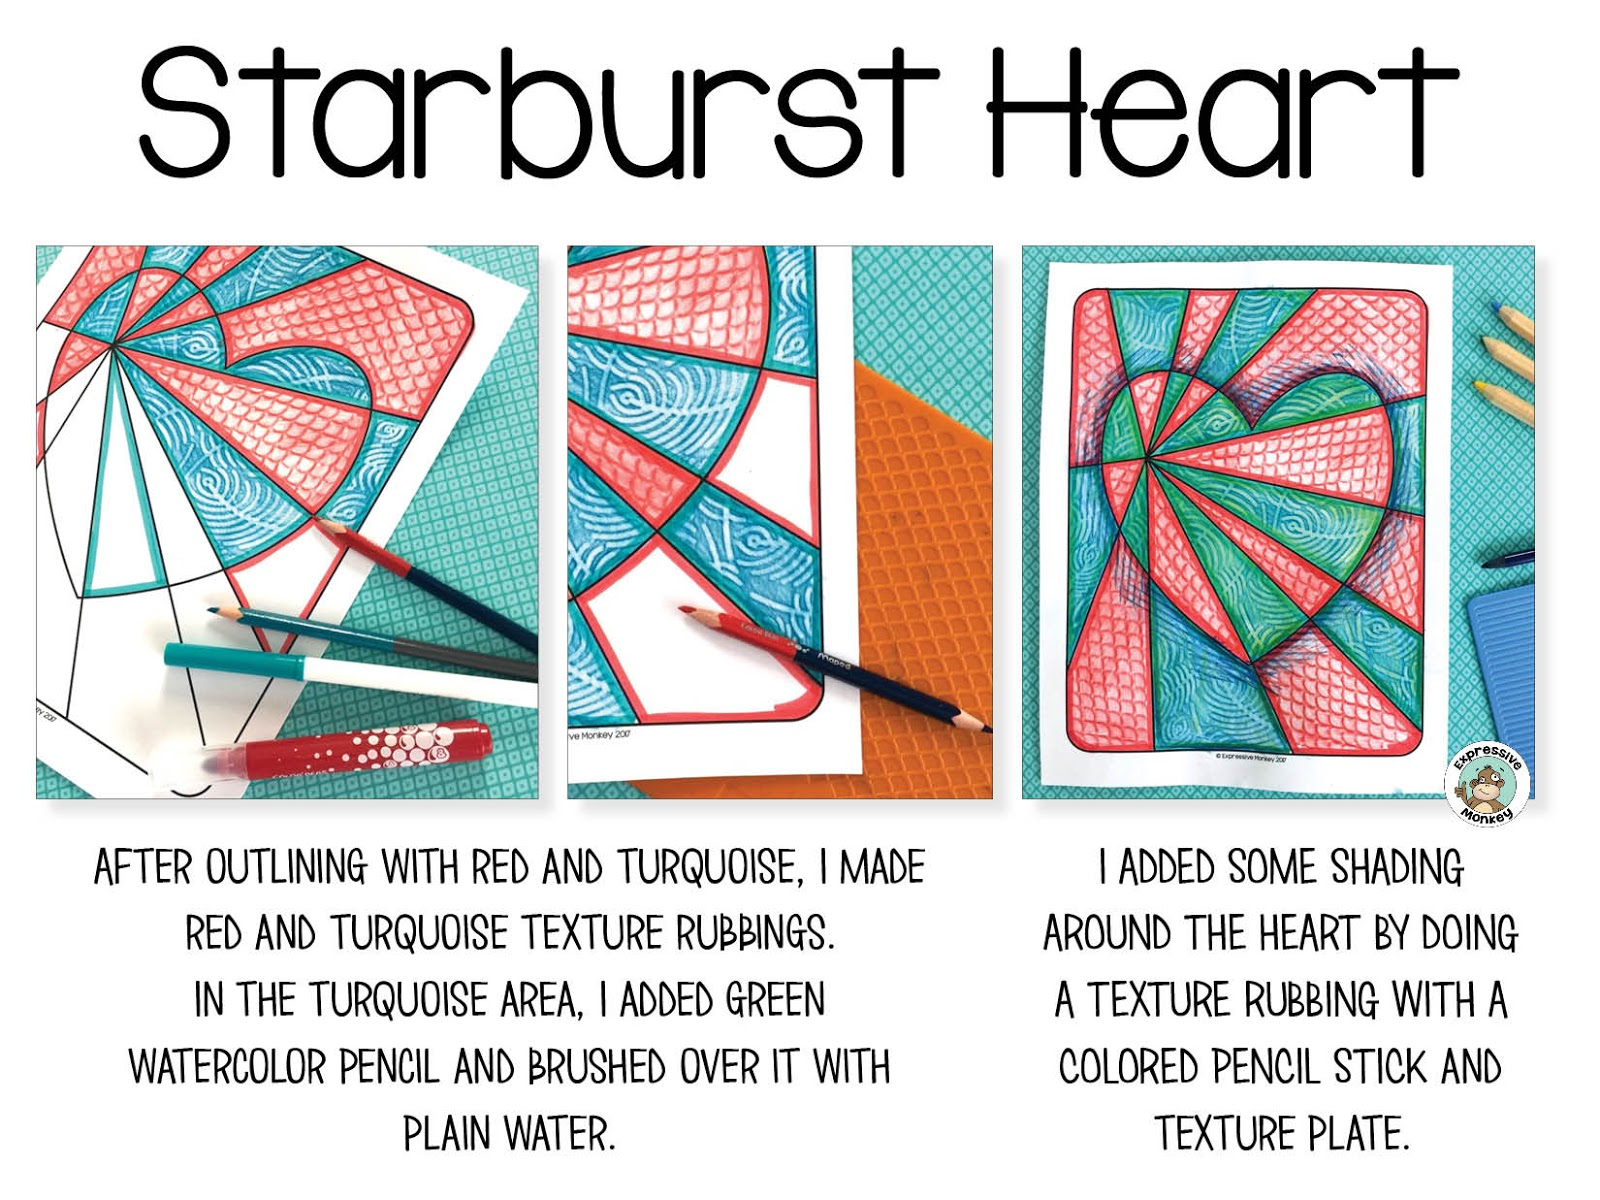 for this demonstration i used coloring sheets from my op art hearts coloring pages if youd like the instructions for drawing your own hearts the op art